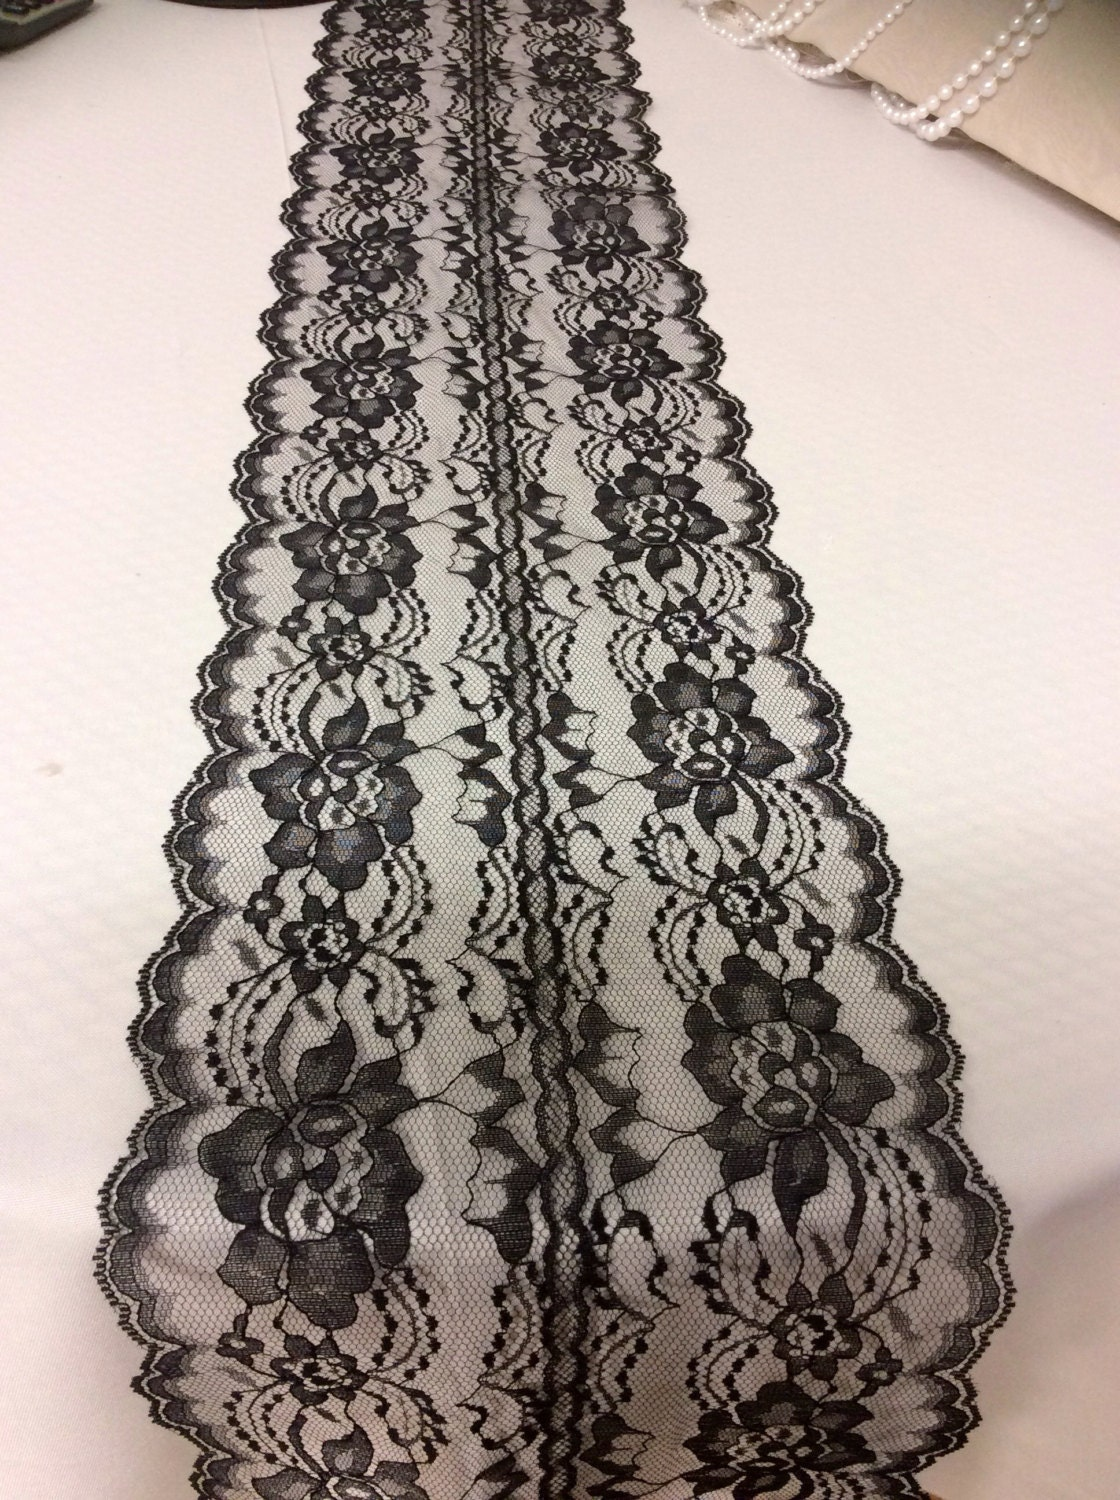 5ft 10ft black lace table runner wedding by lovelylacedesigns